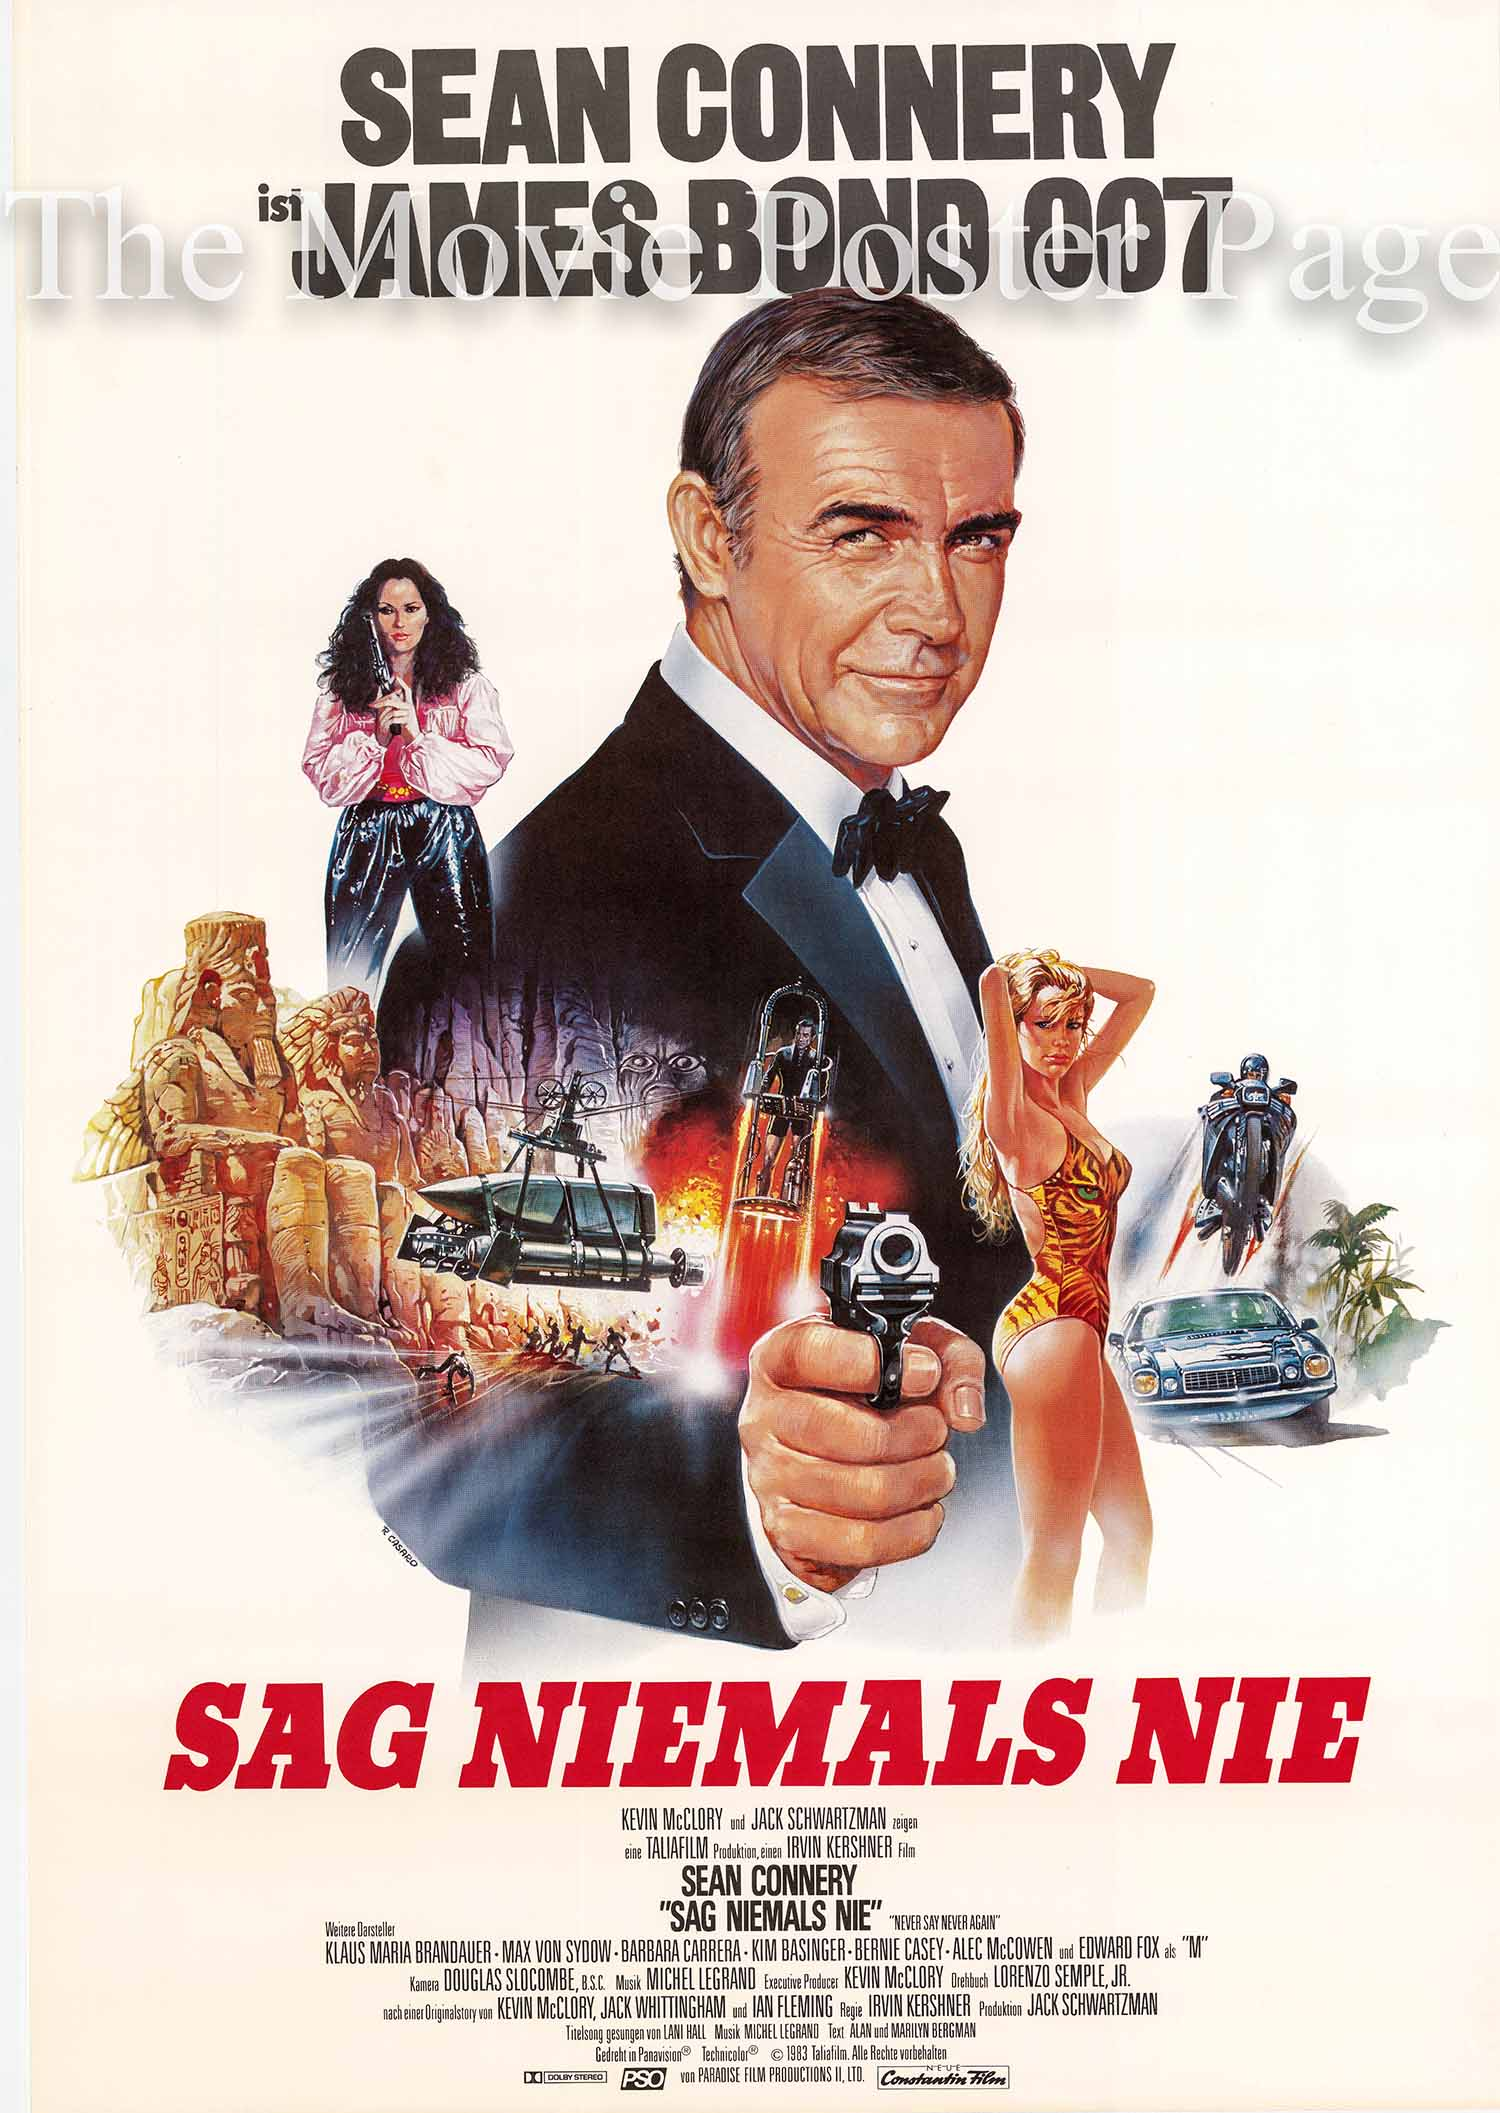 Pictured is a German two-sheet promotional poster for the 1983 Irvin Kershner film Never Say Never Again starring Sean